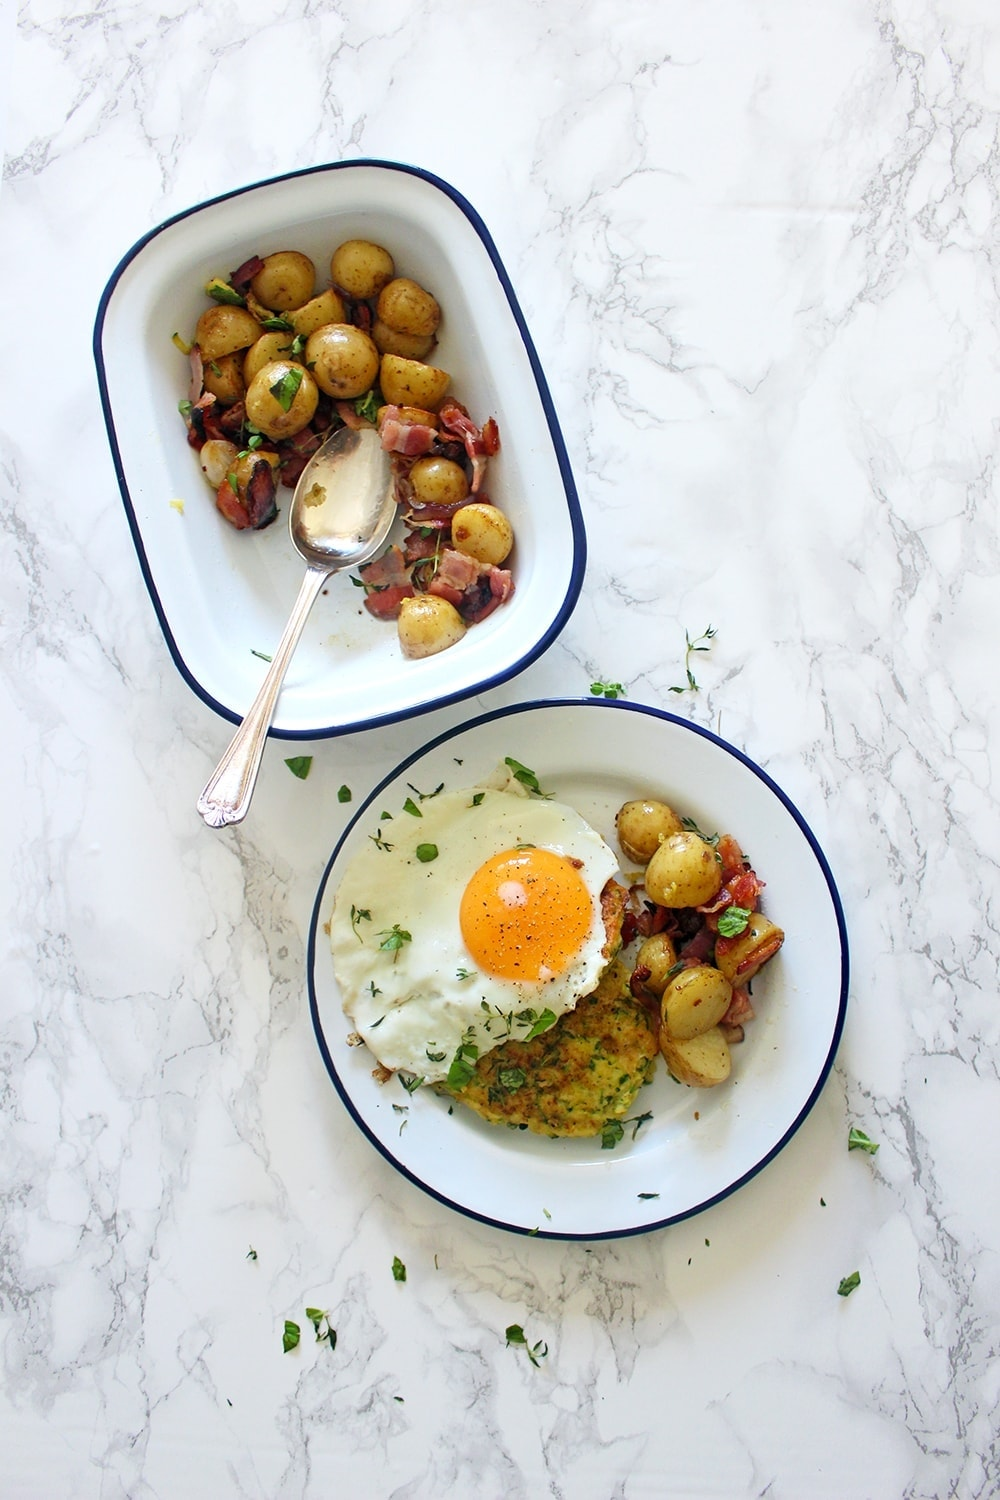 These courgette fritters get a kick from pecorino and chilli flakes. They work perfectly alongside crispy fried potato & bacon and topped with a fried egg!